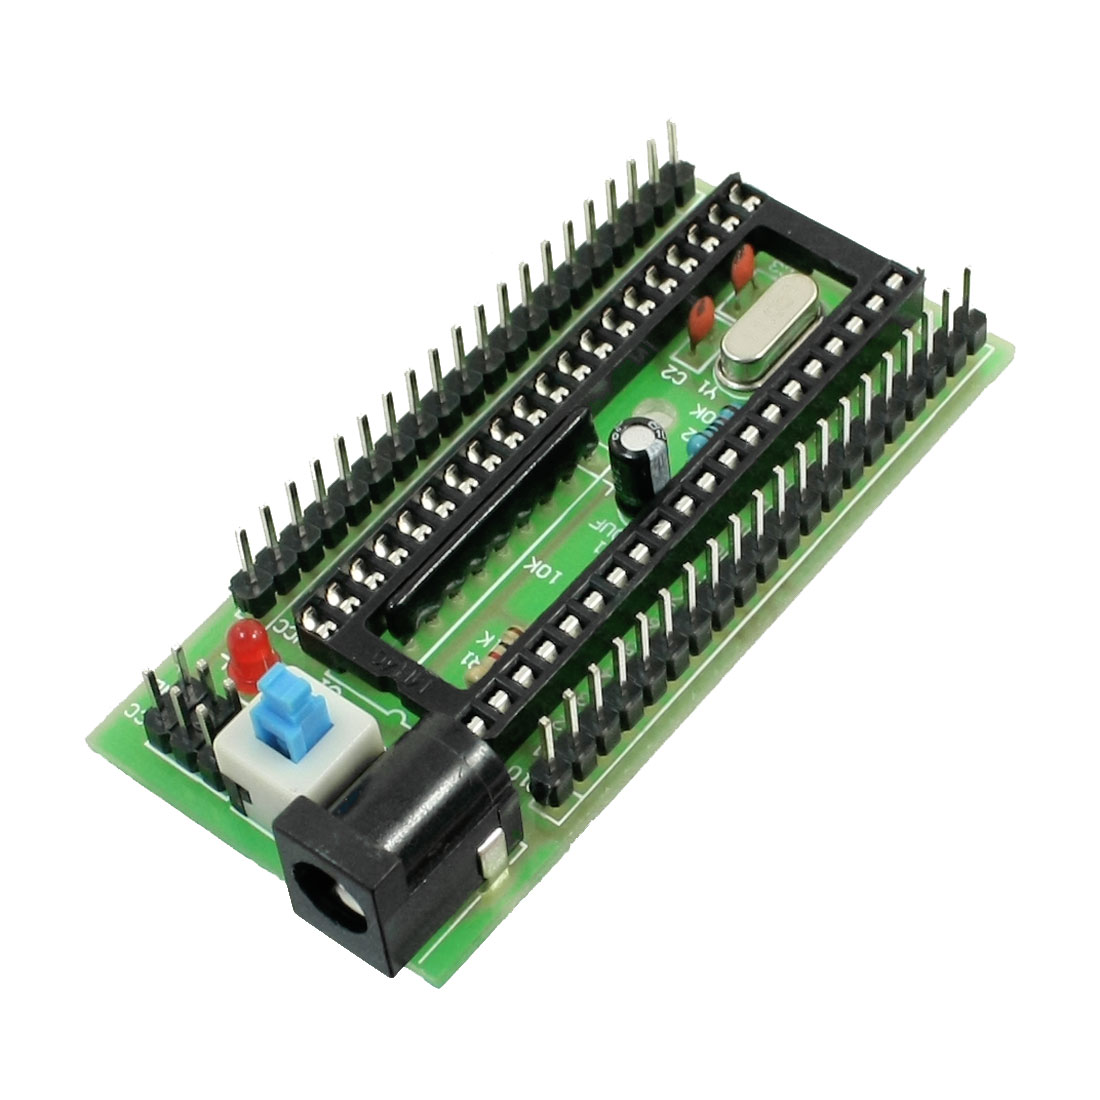 51 MCU SCM Microcontroller STC89C52 Development Board Parts